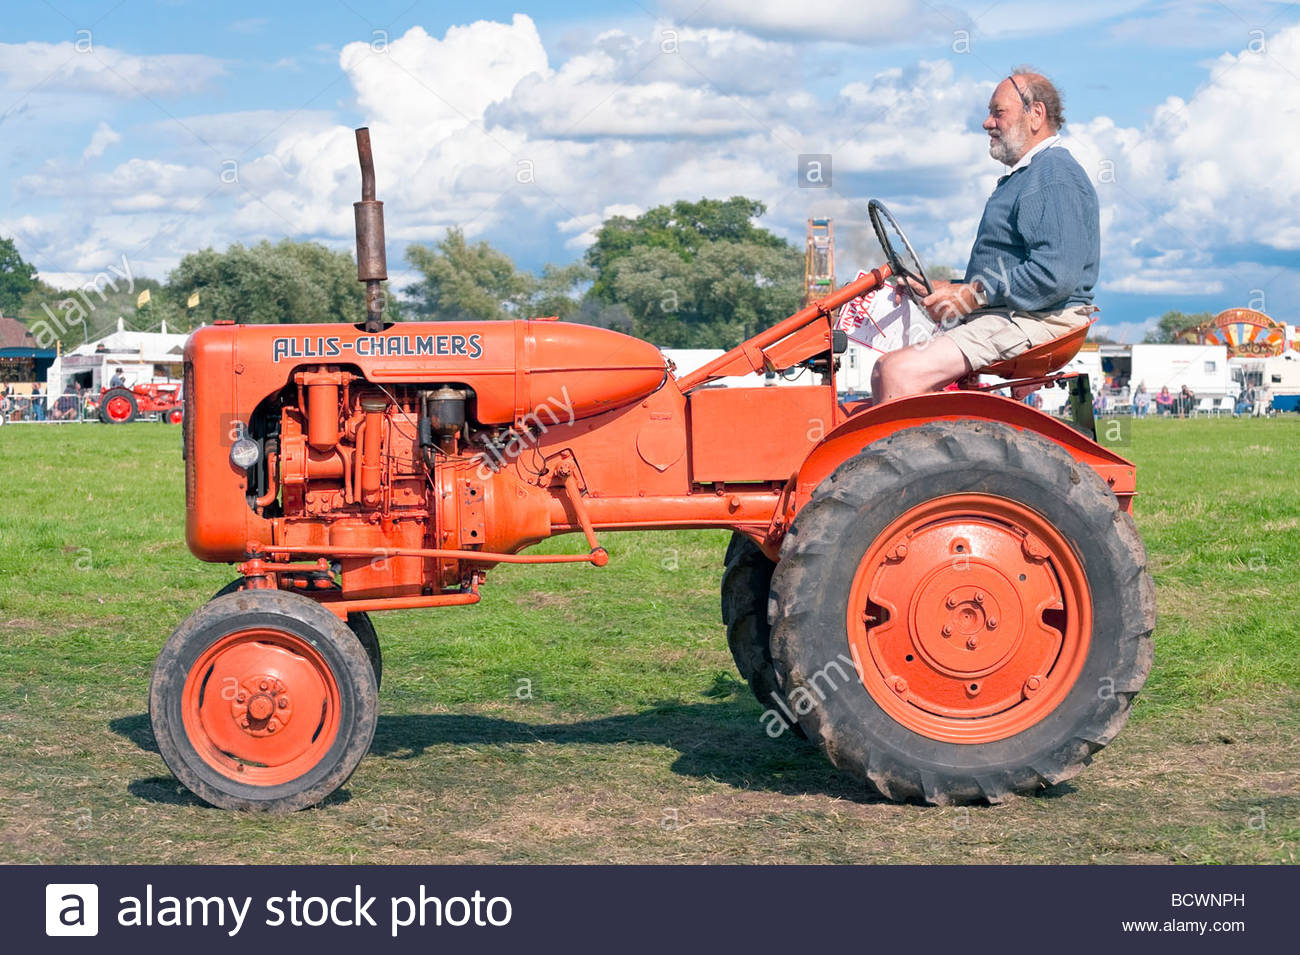 Vintage Tractor At Welland Steam Rally Uk Allis Chalmers Classic Tractor